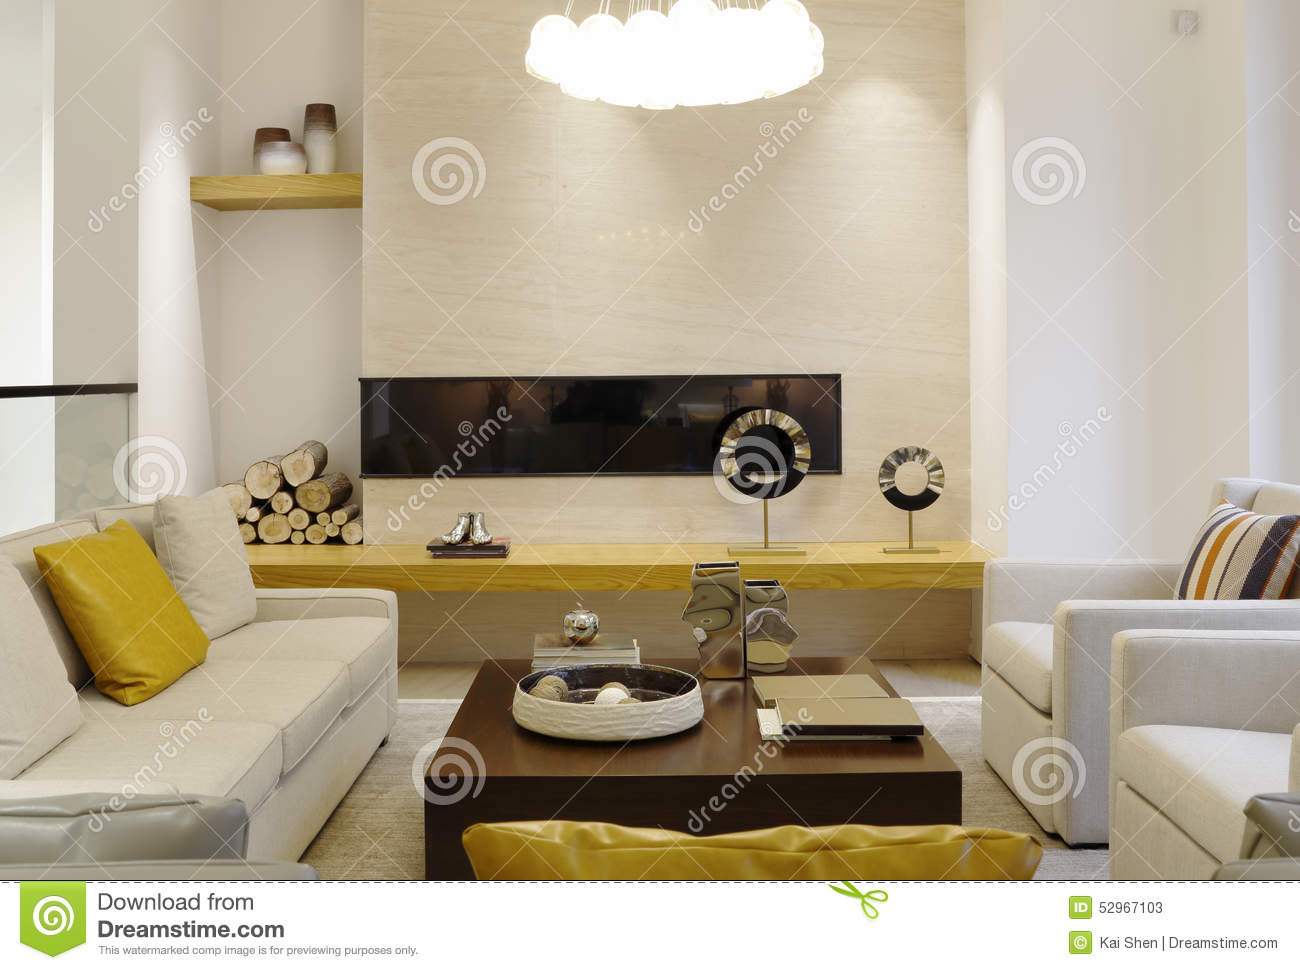 Stylish Sitting Room In The Villa Stock Image - Image of curtain ...